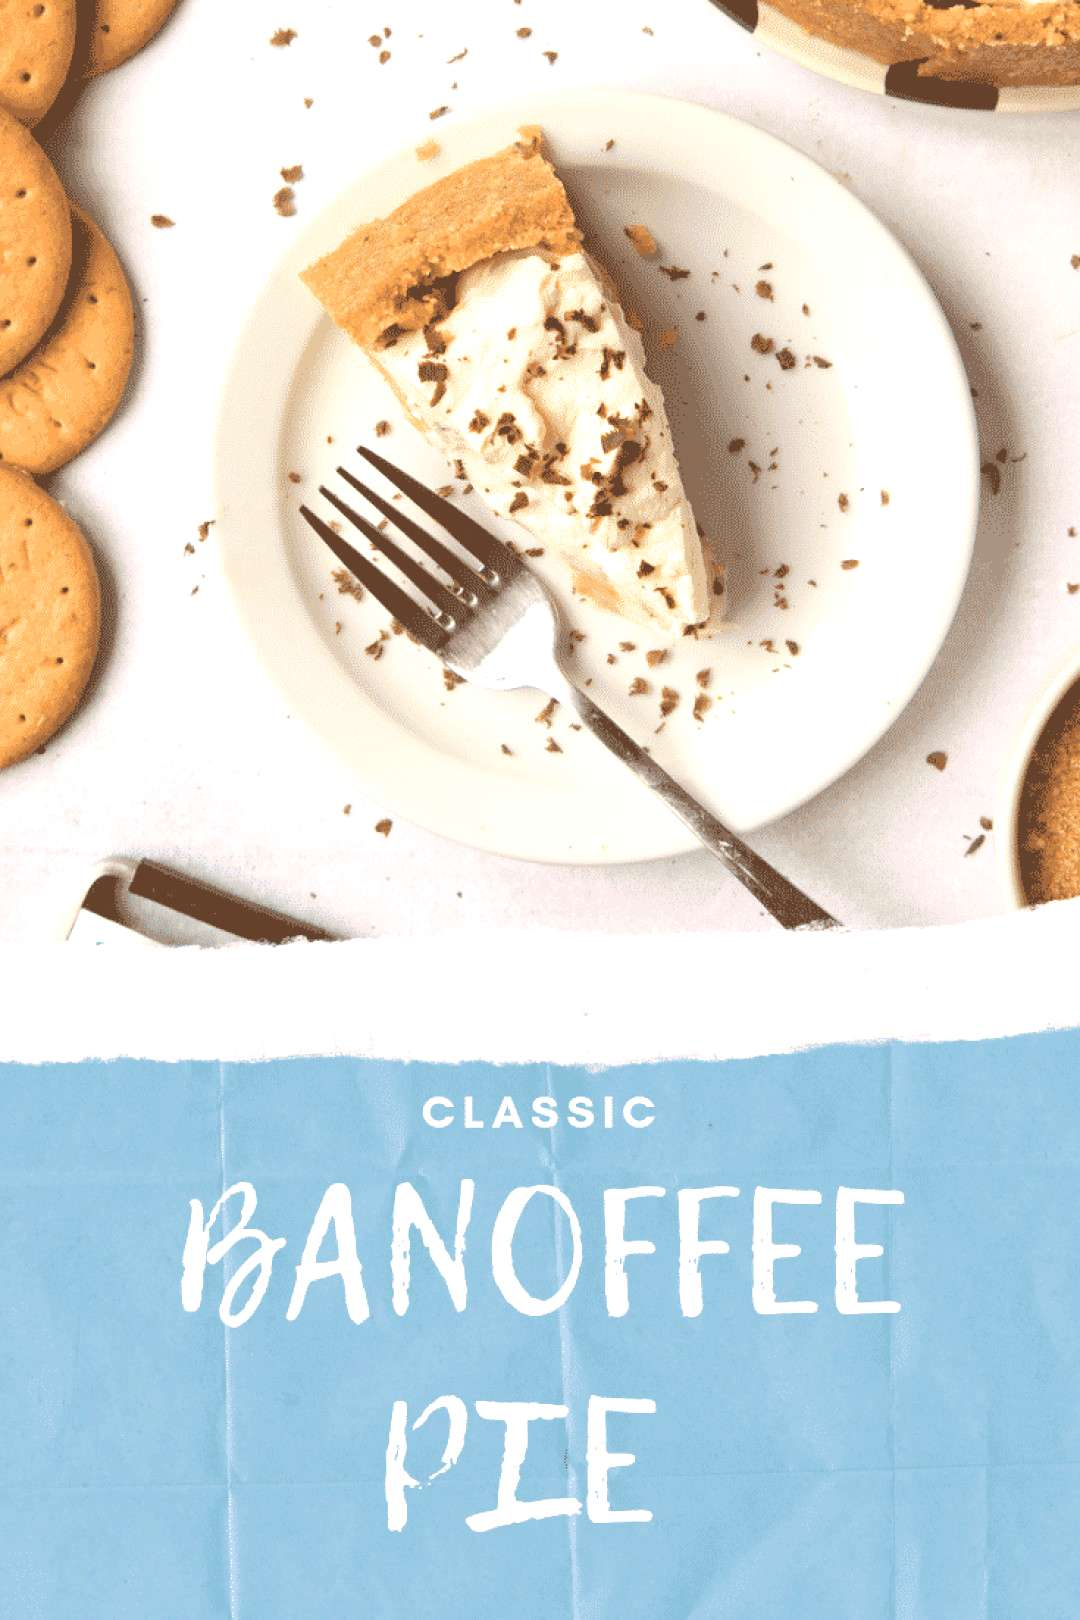 Classic Banoffee Pie A Classic British Banoffee Pie has a sweet and crumbly biscuit (or graham crac